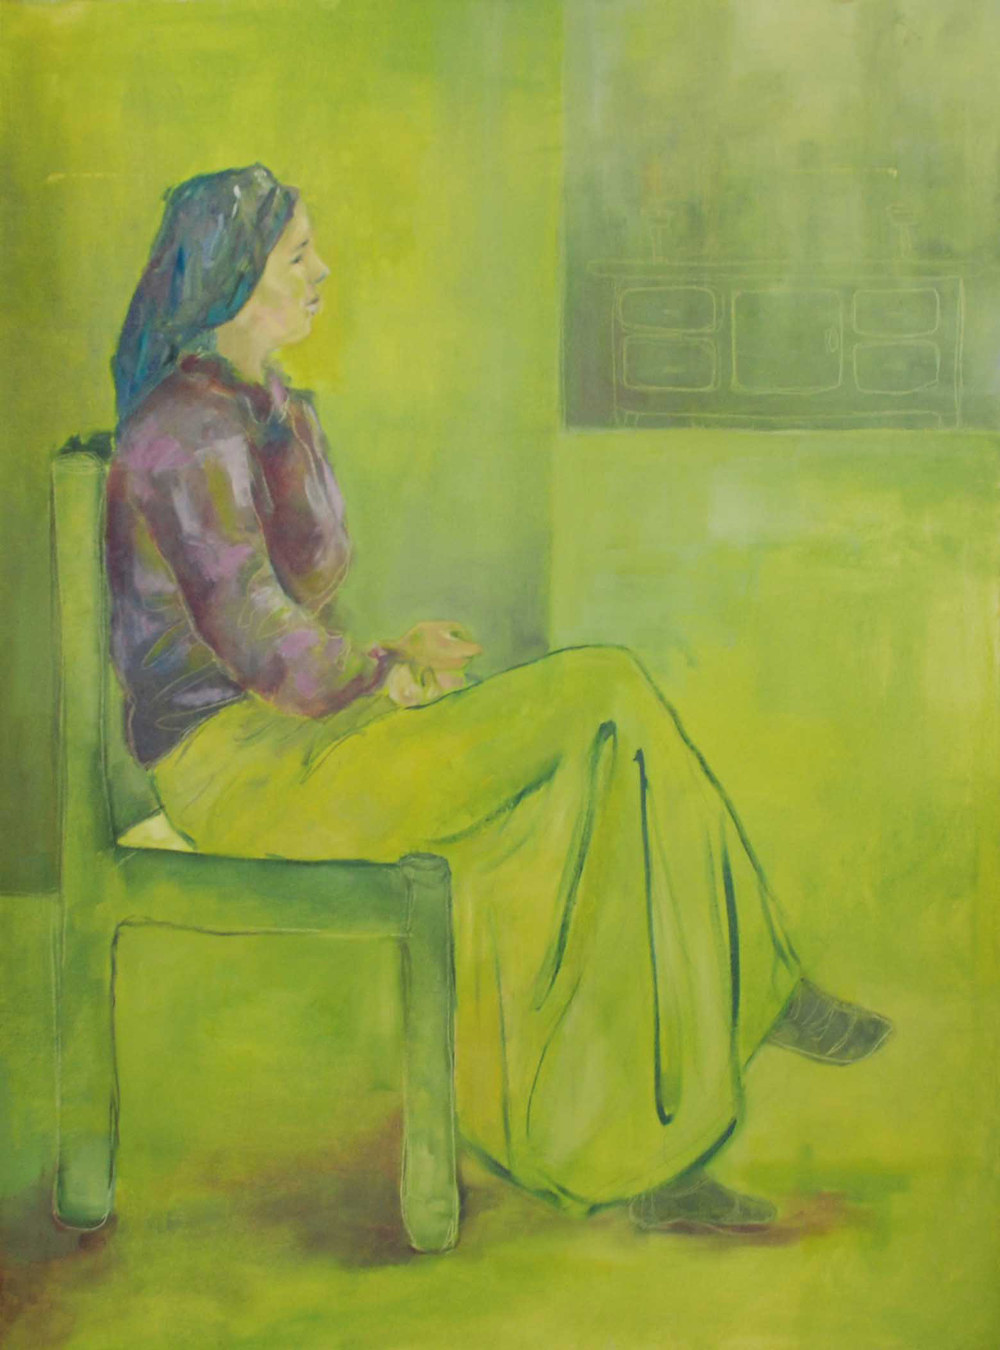 Oil and acrylic on canvas, 50*70 cm, 2005